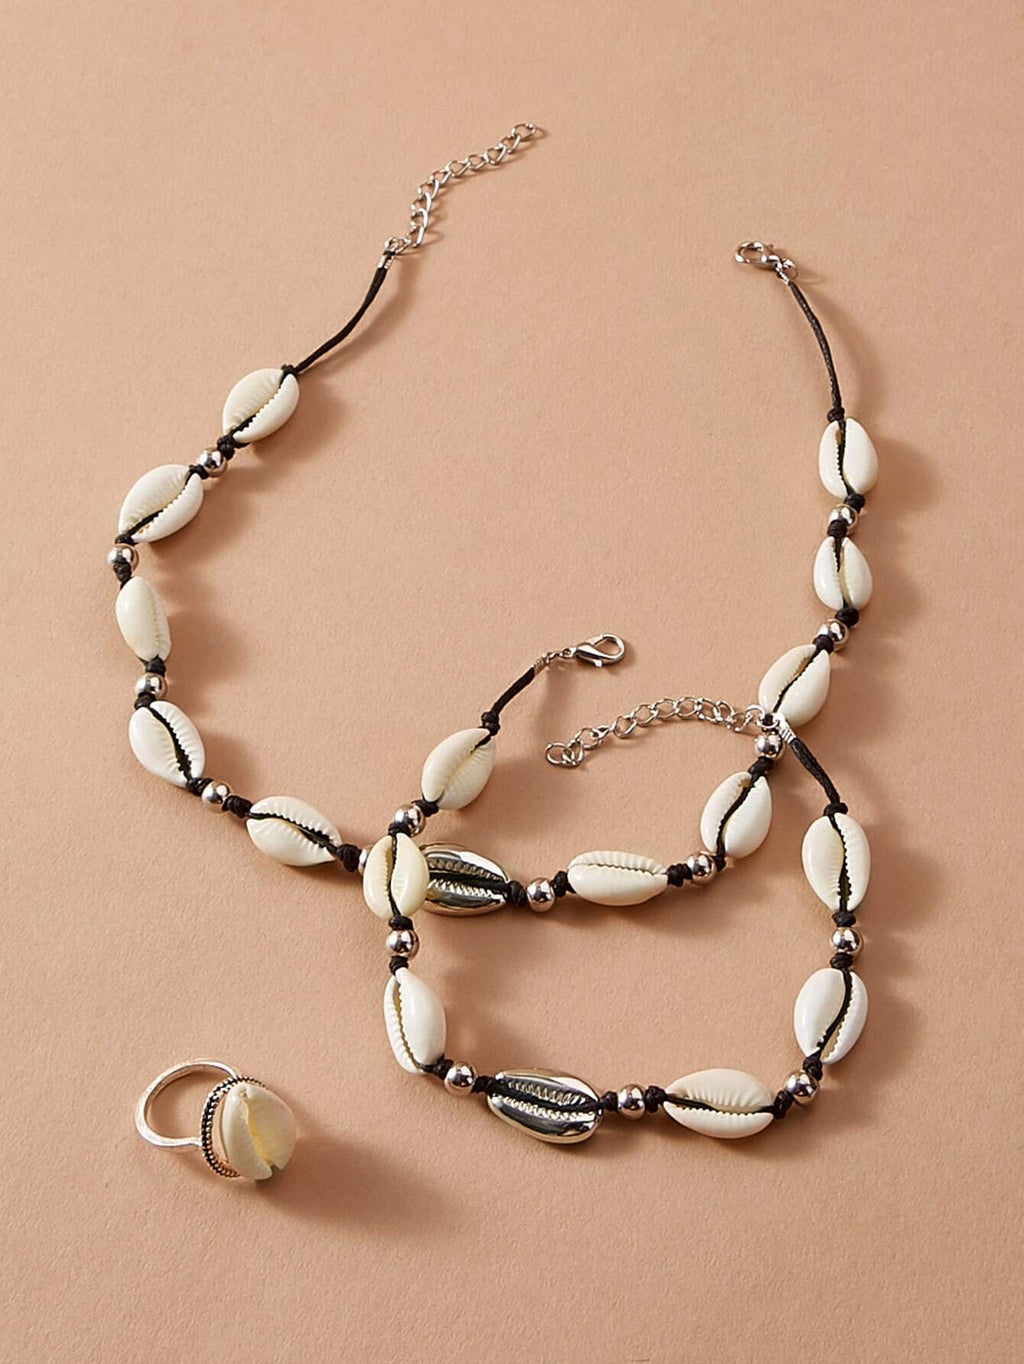 Shell Design Necklace & Bracelet & Ring 3pcs (4249055985734)